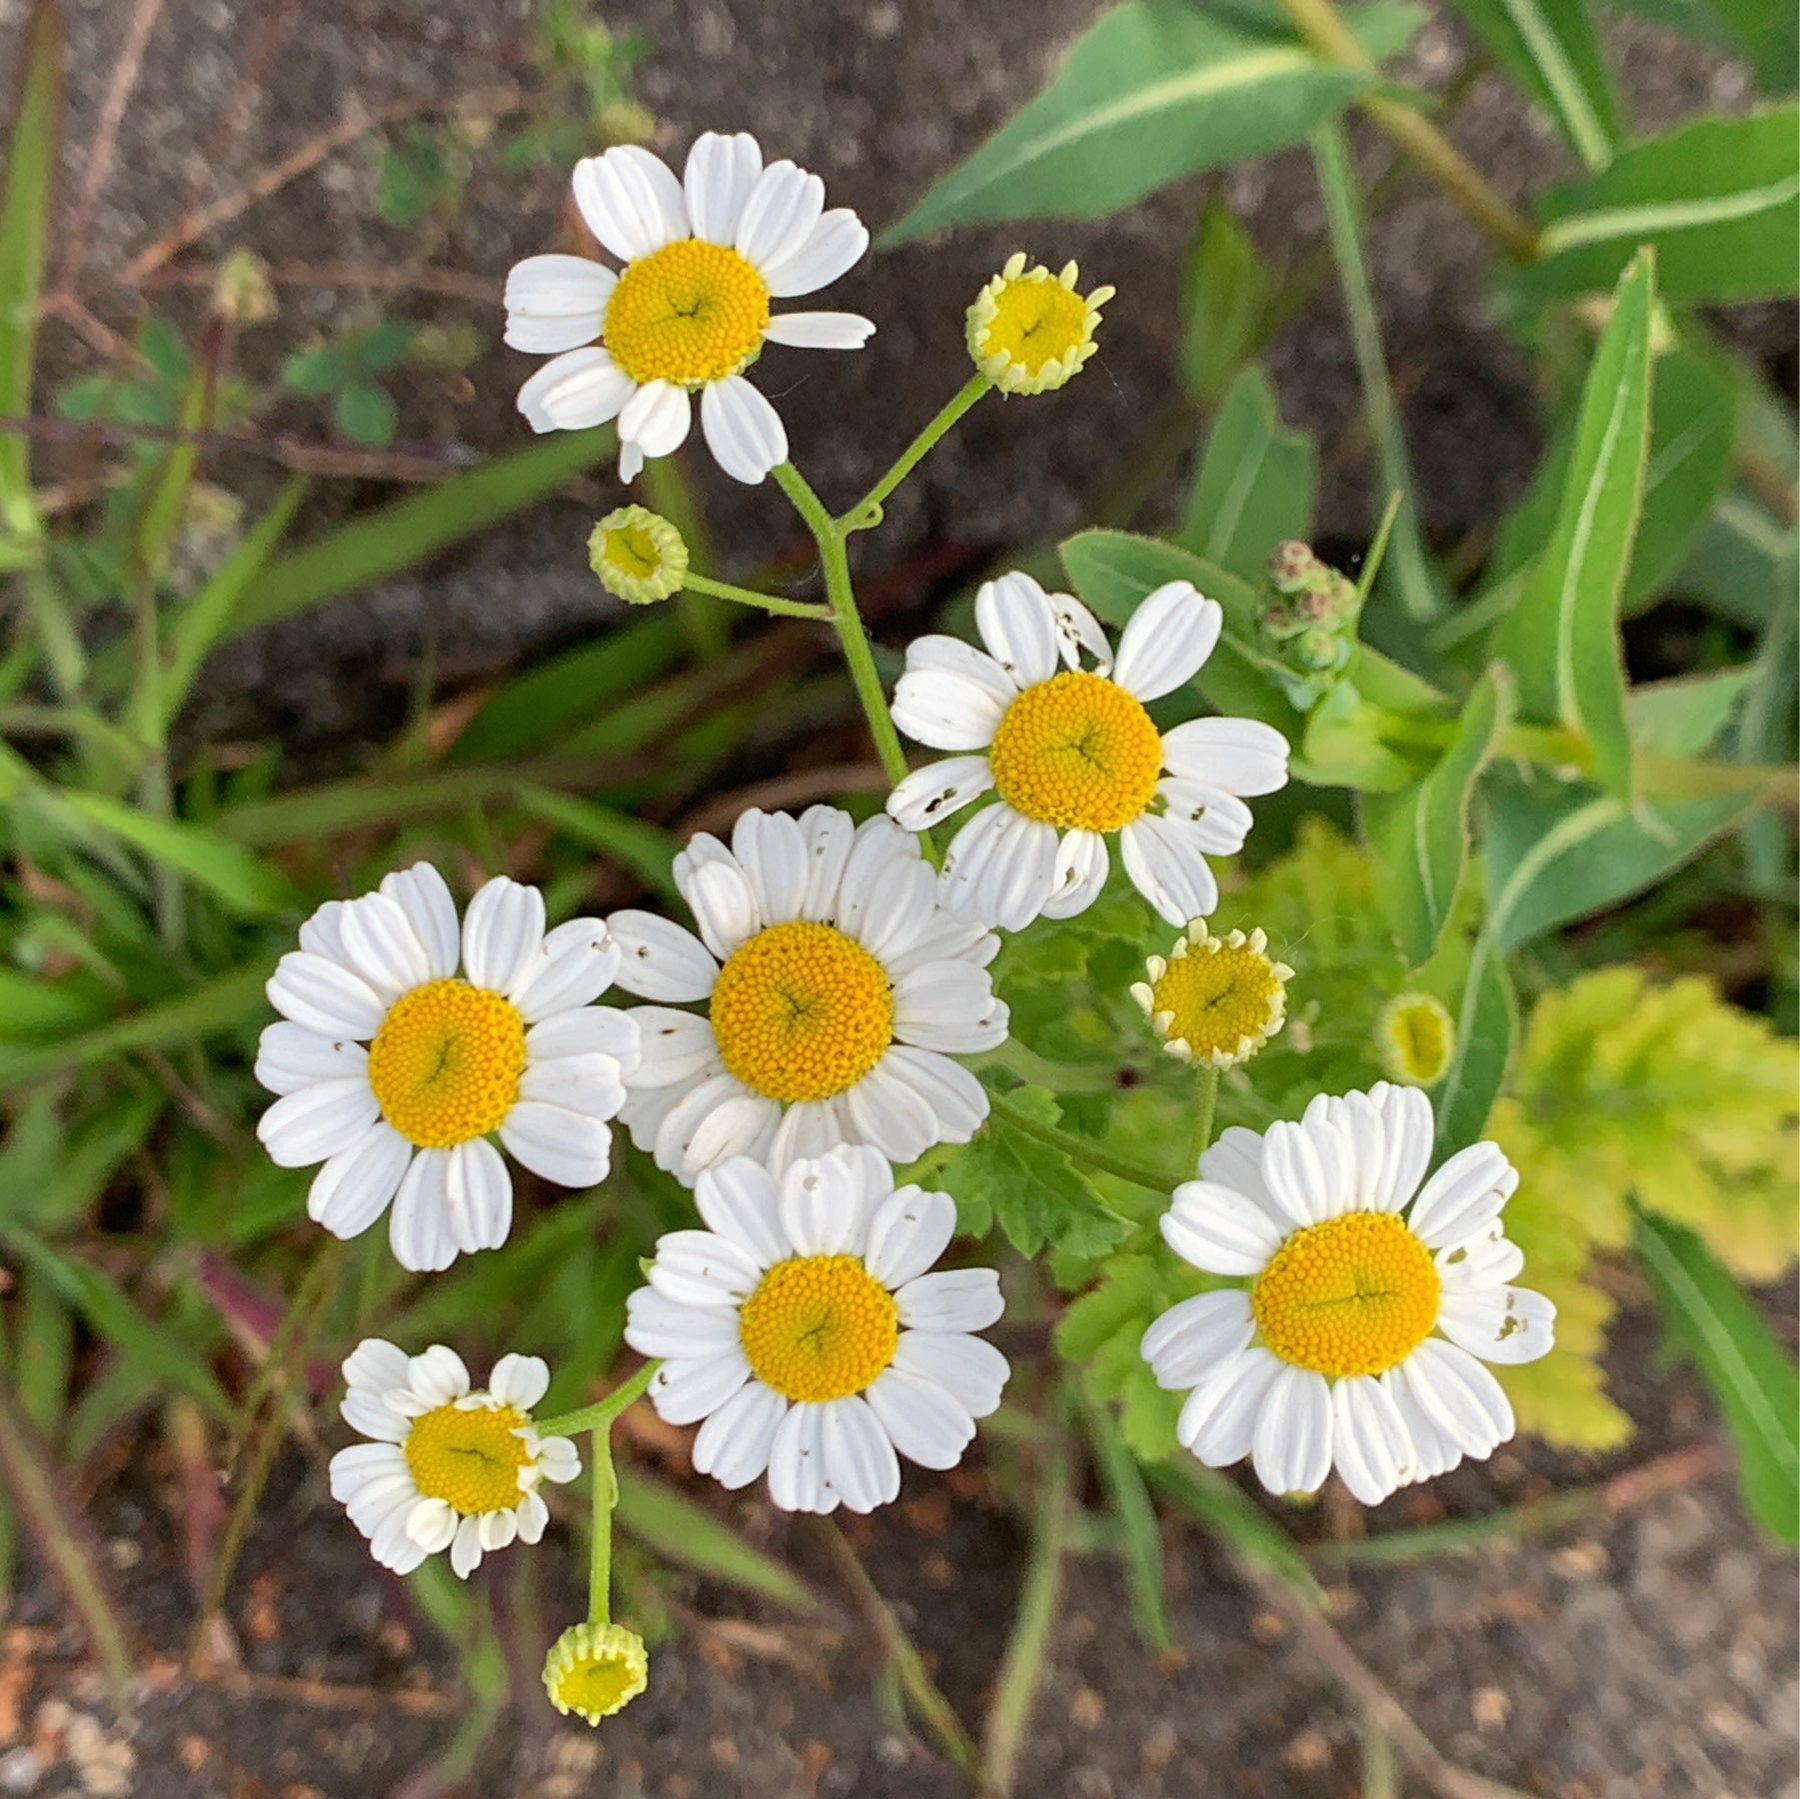 daisies maybe?